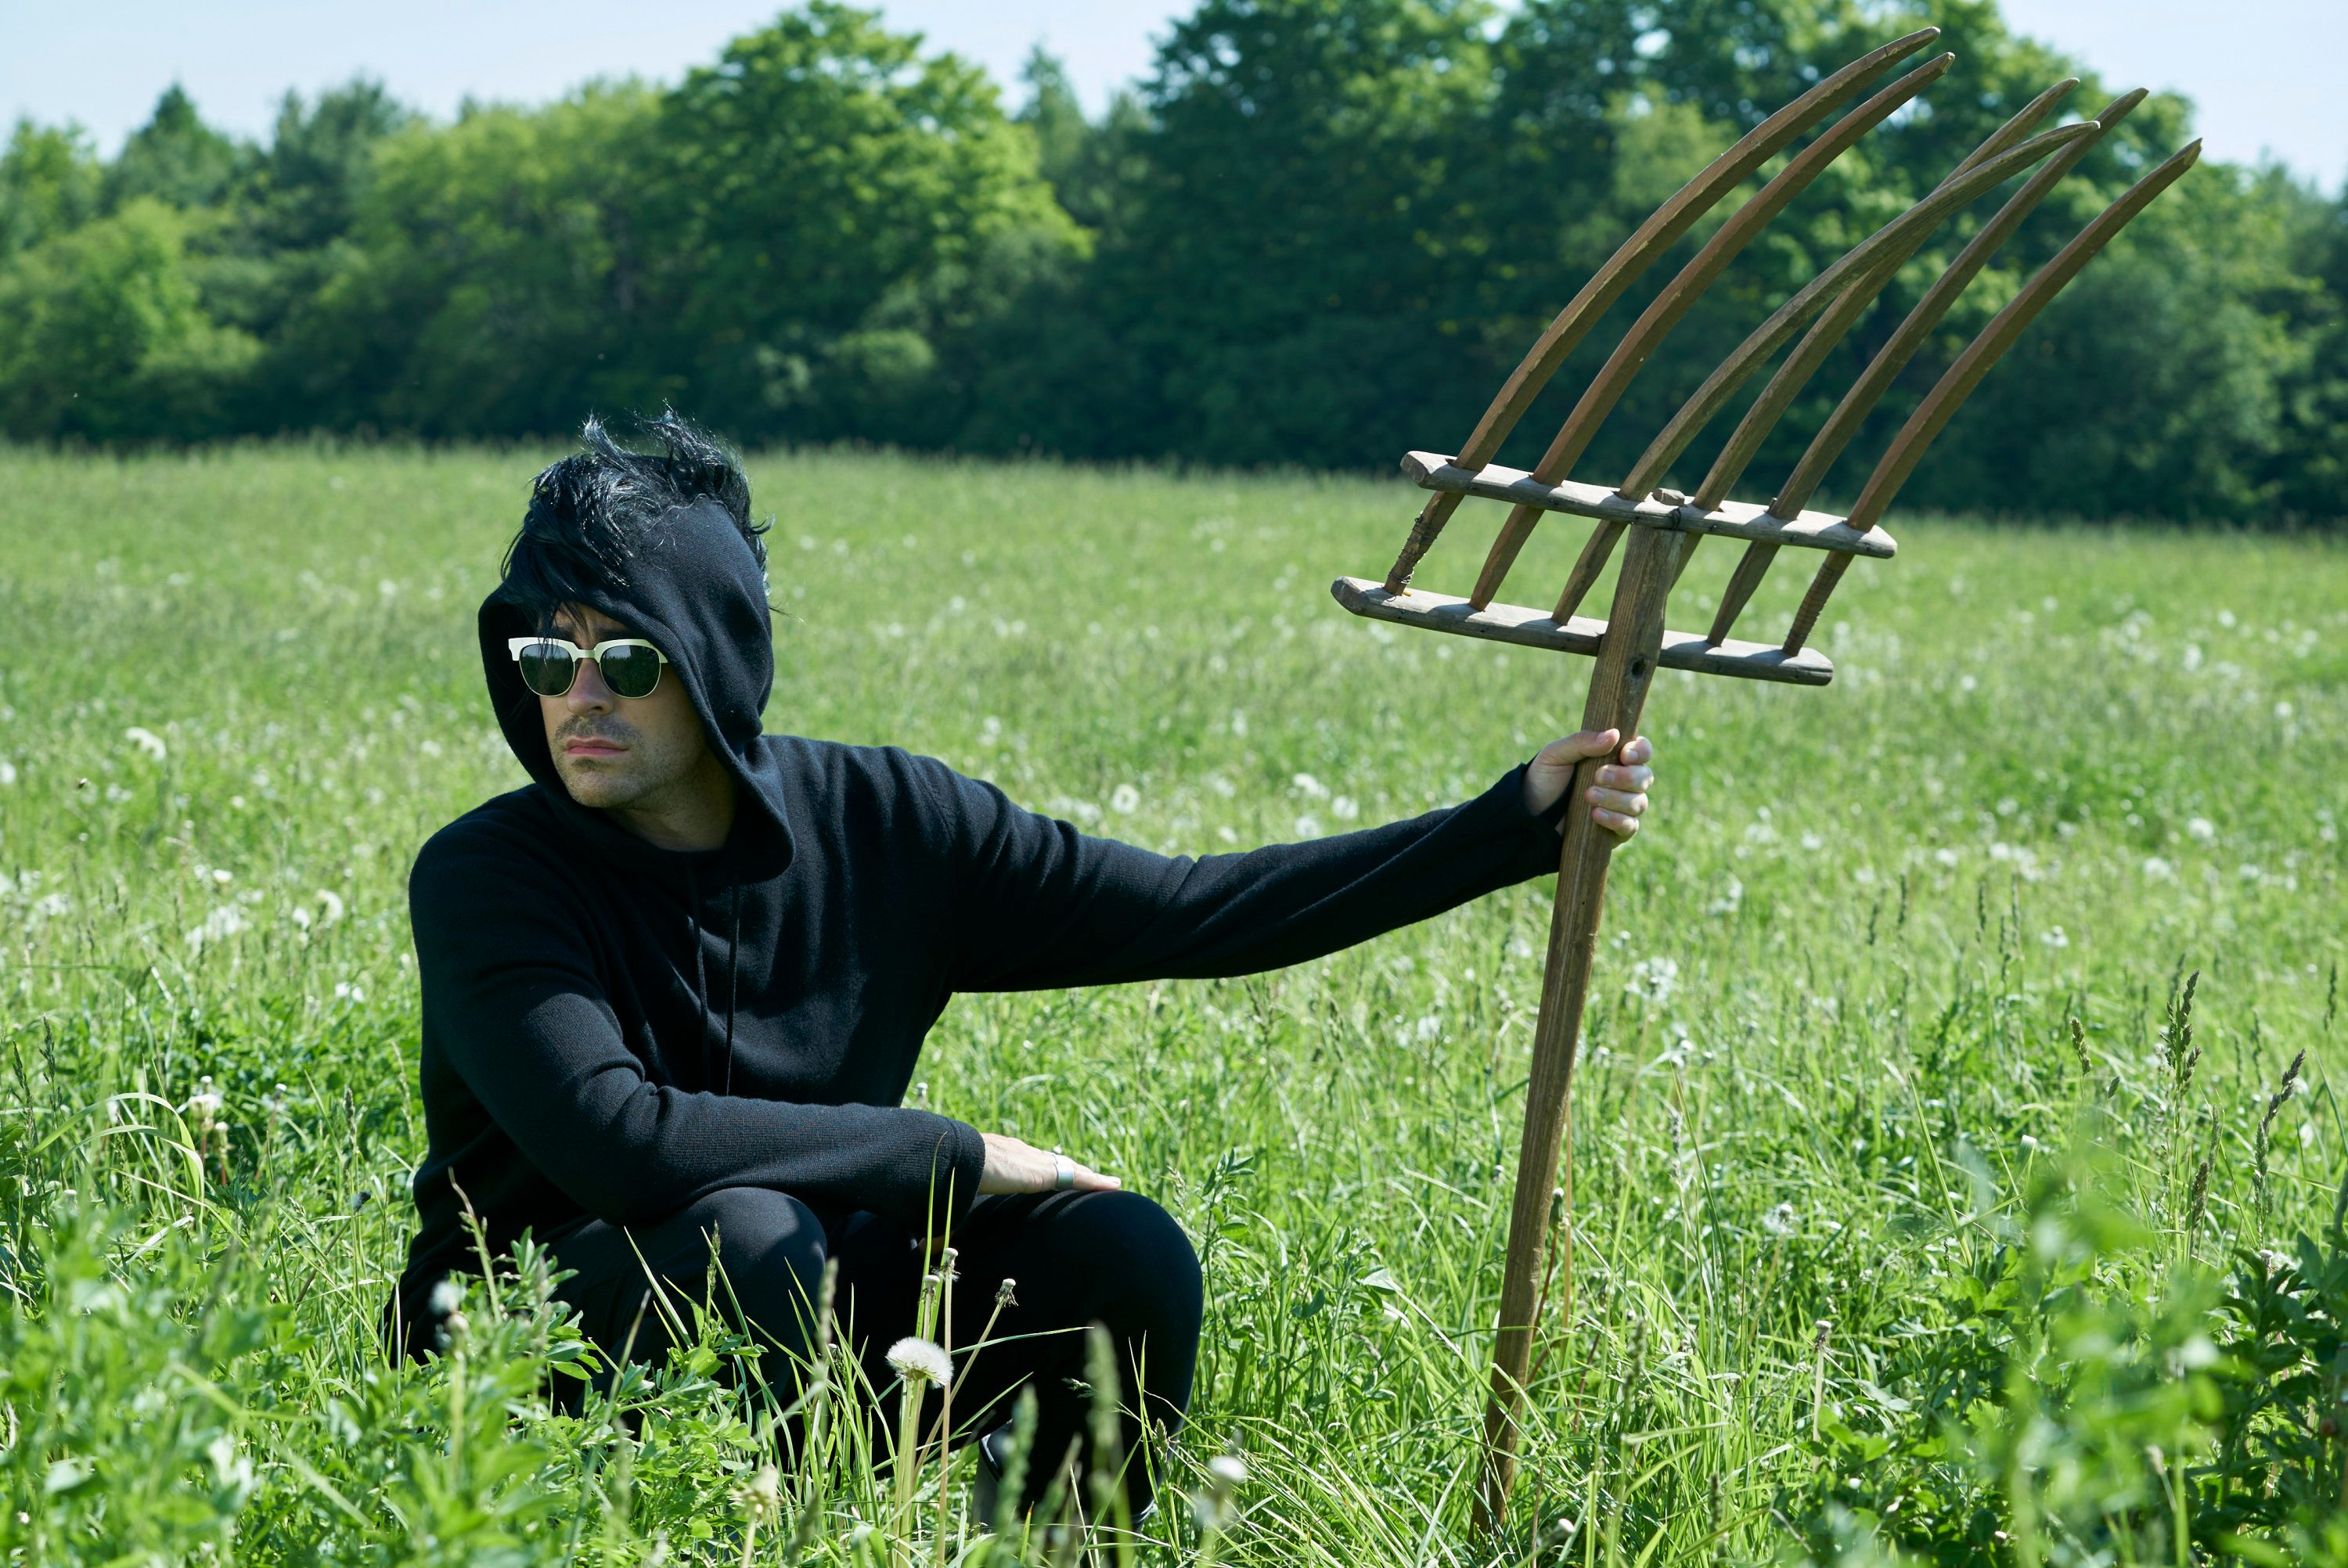 David crouches in a field holding a pitchfork and wearing a black hoodie with faux hawk